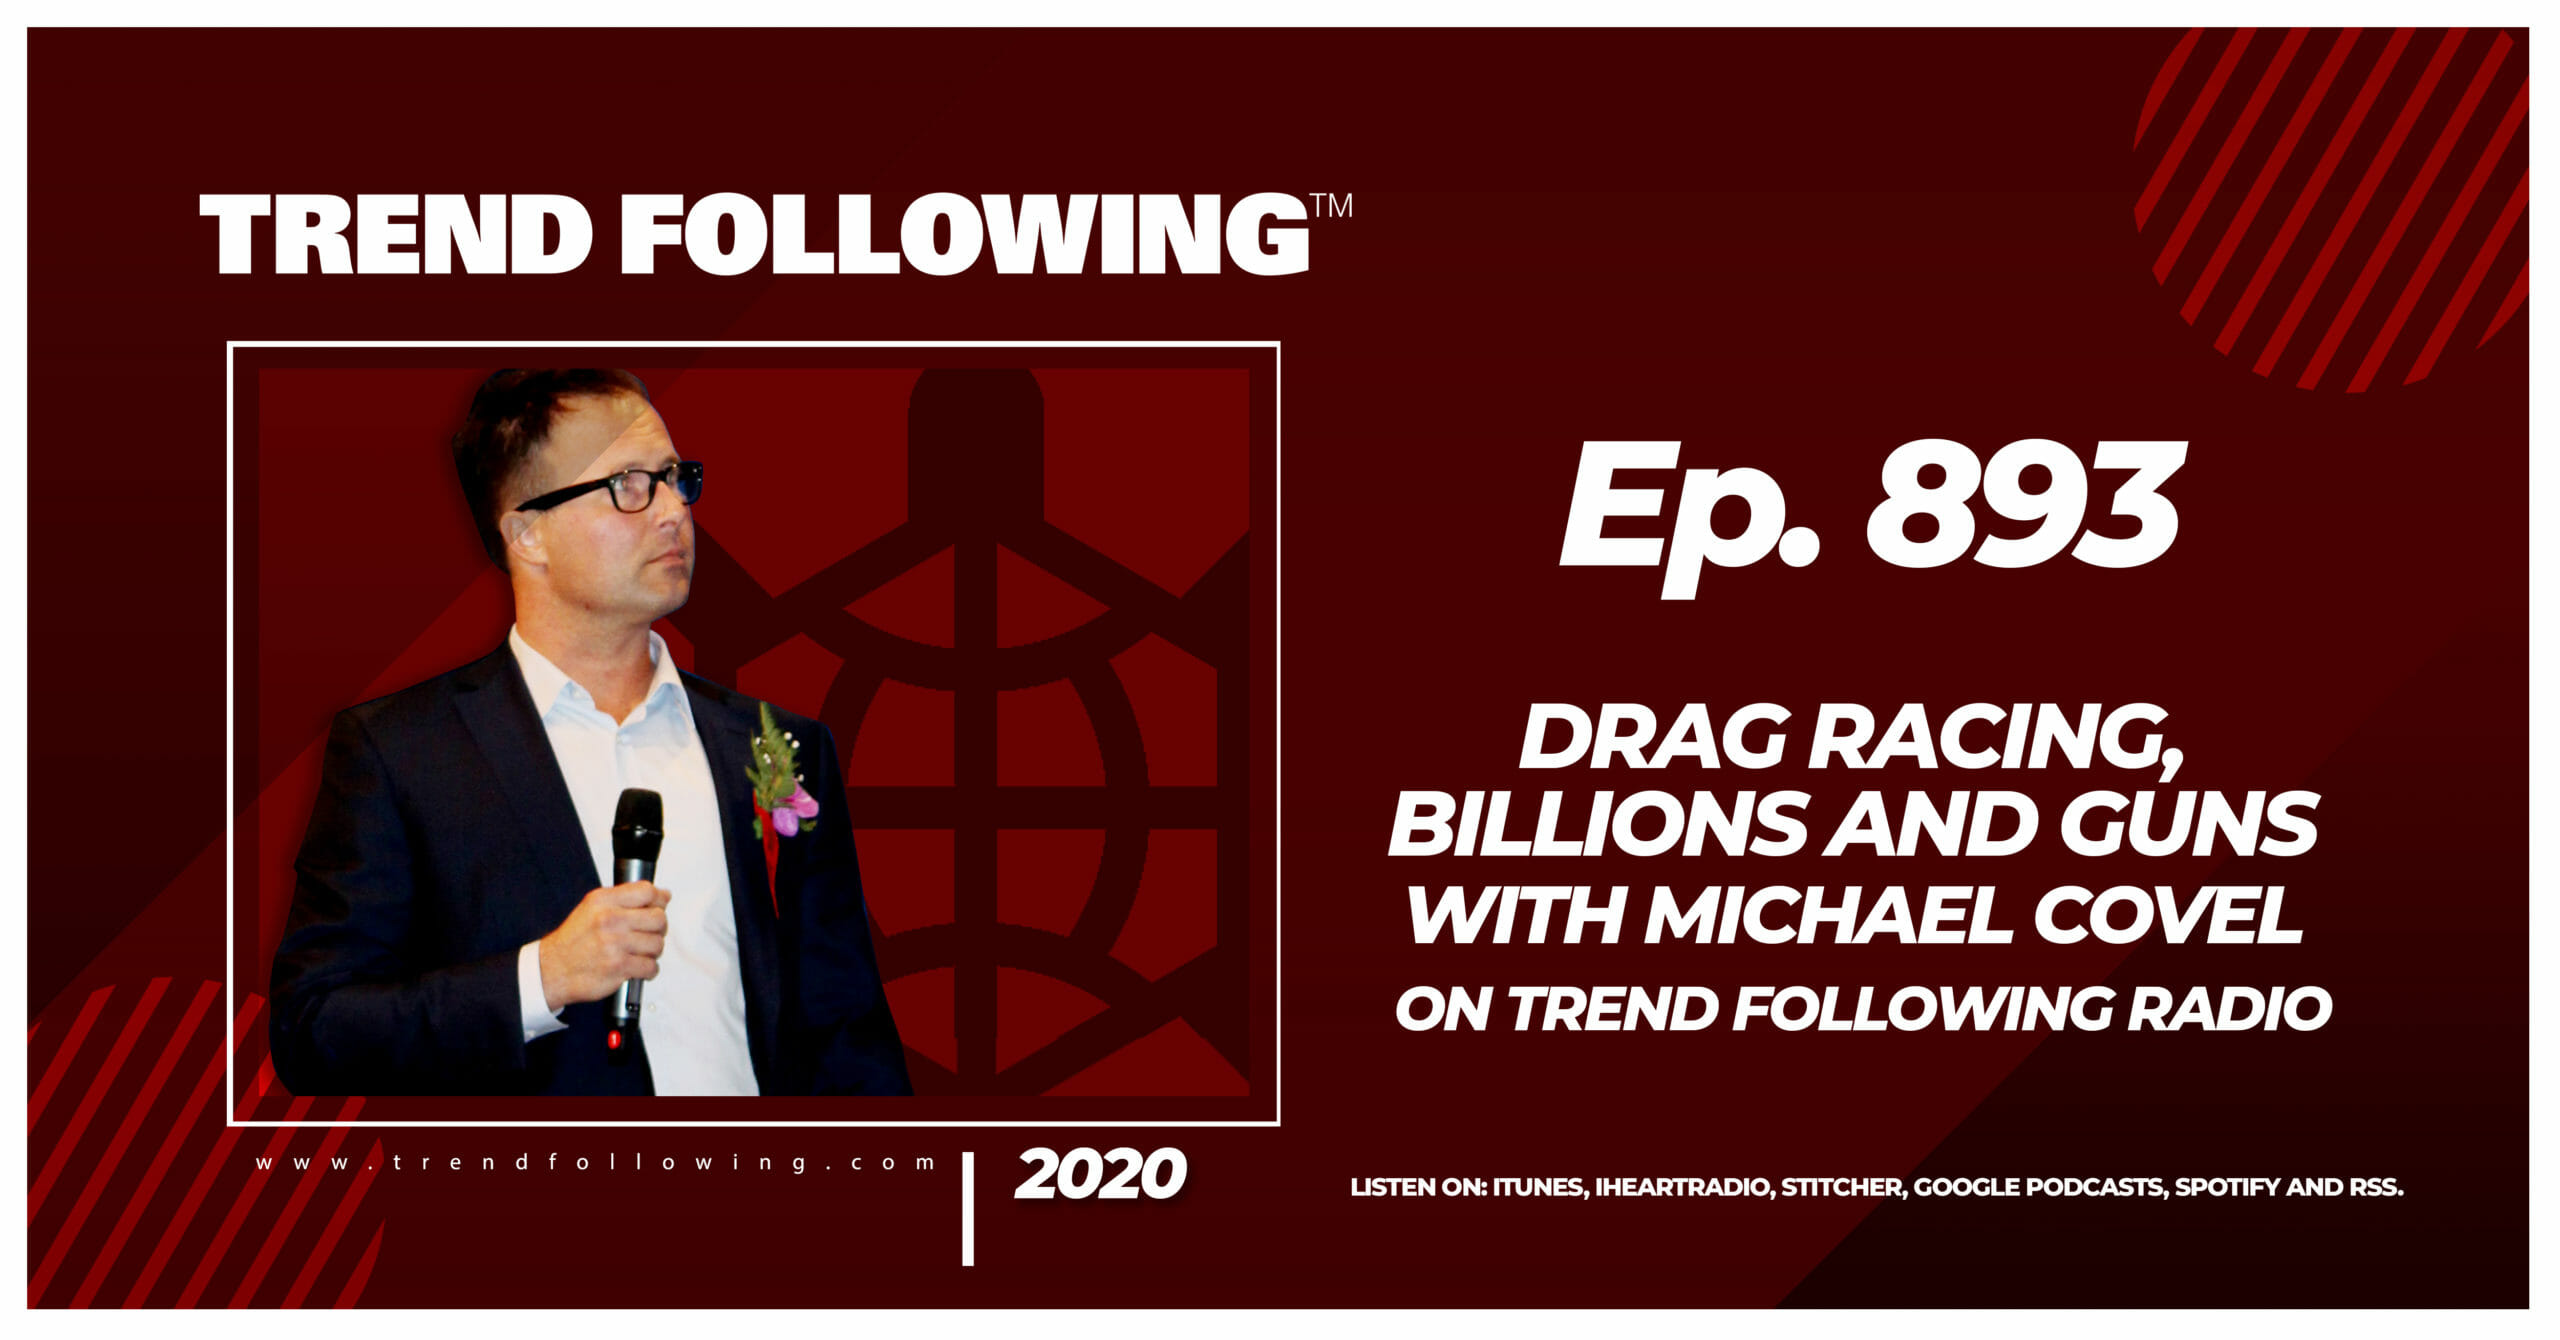 Ep. 893: Drag Racing, Billions and Guns with Michael Covel on Trend Following Radio